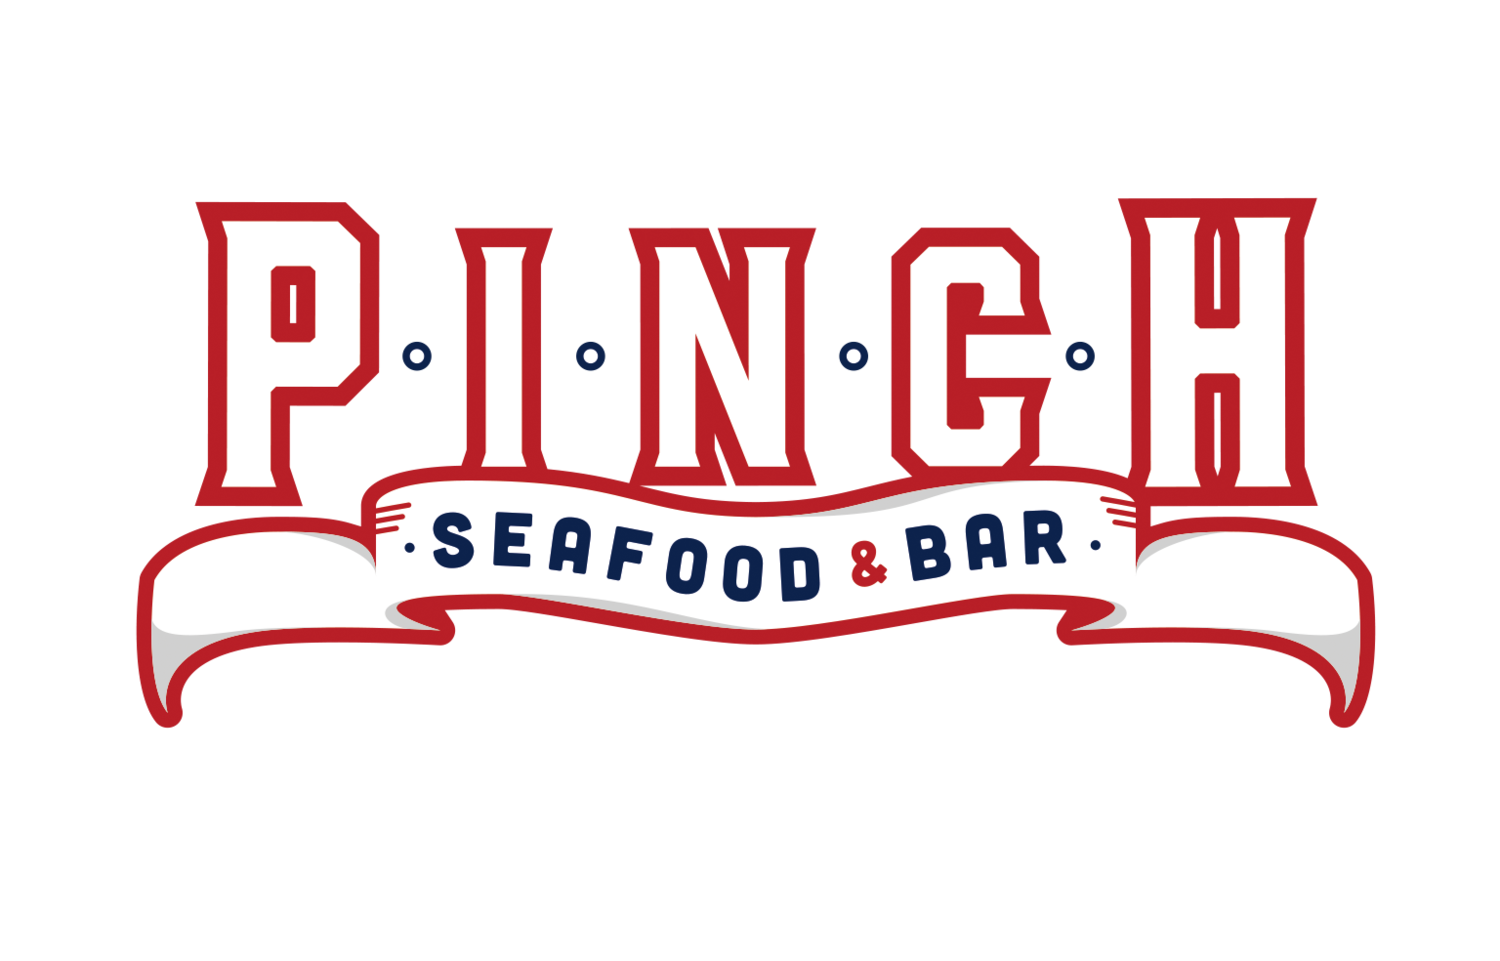 Seafood clipart pinch, Seafood pinch Transparent FREE for.